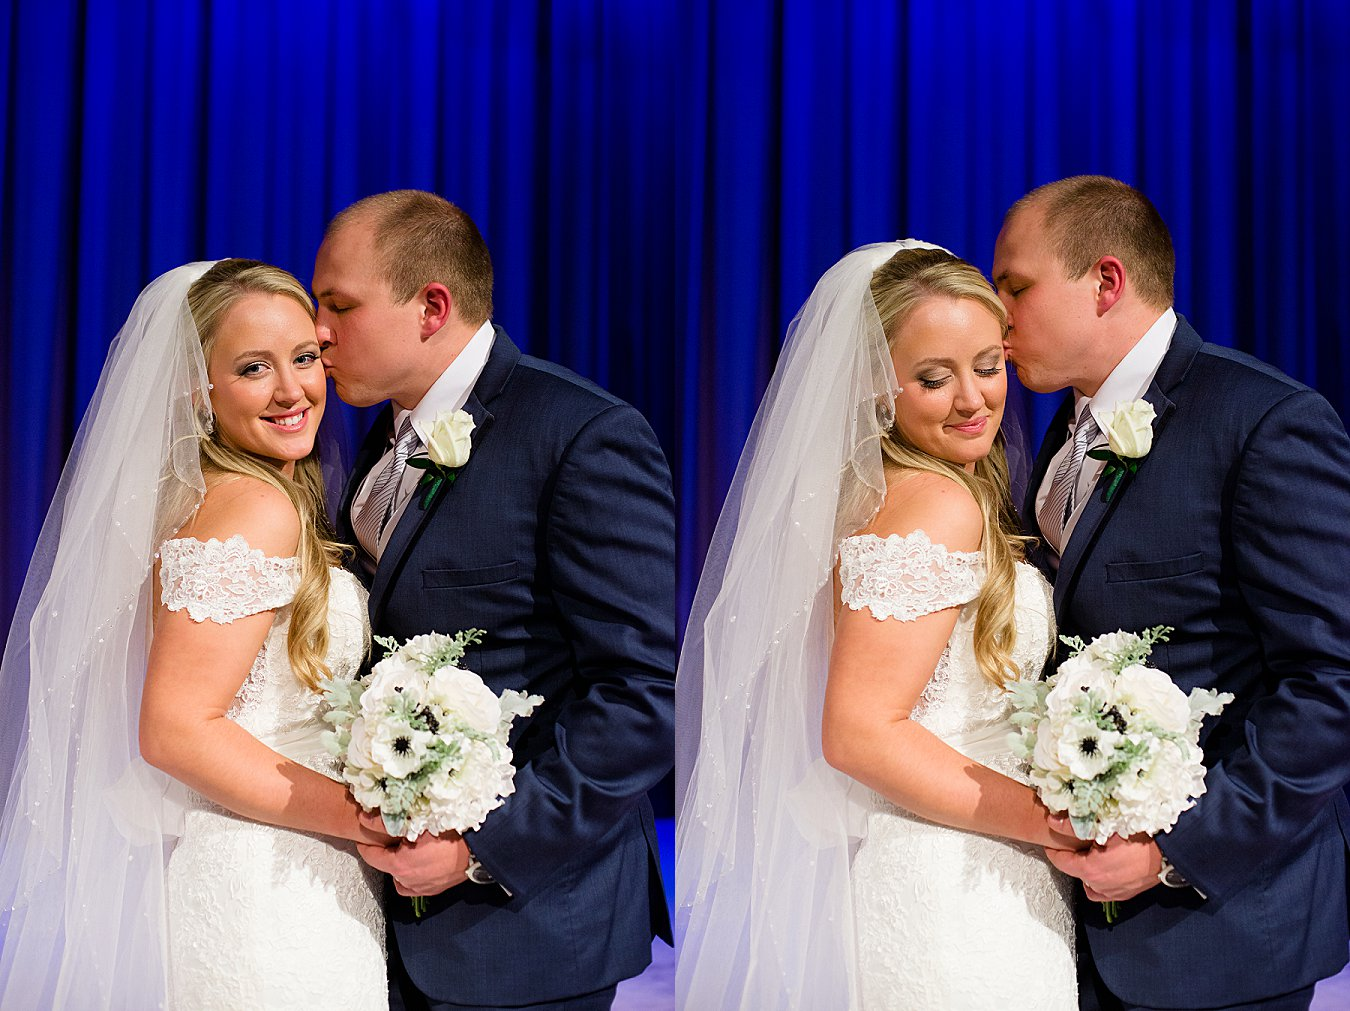 Wedding-Photographers-Bloomsburg_0727.jpg